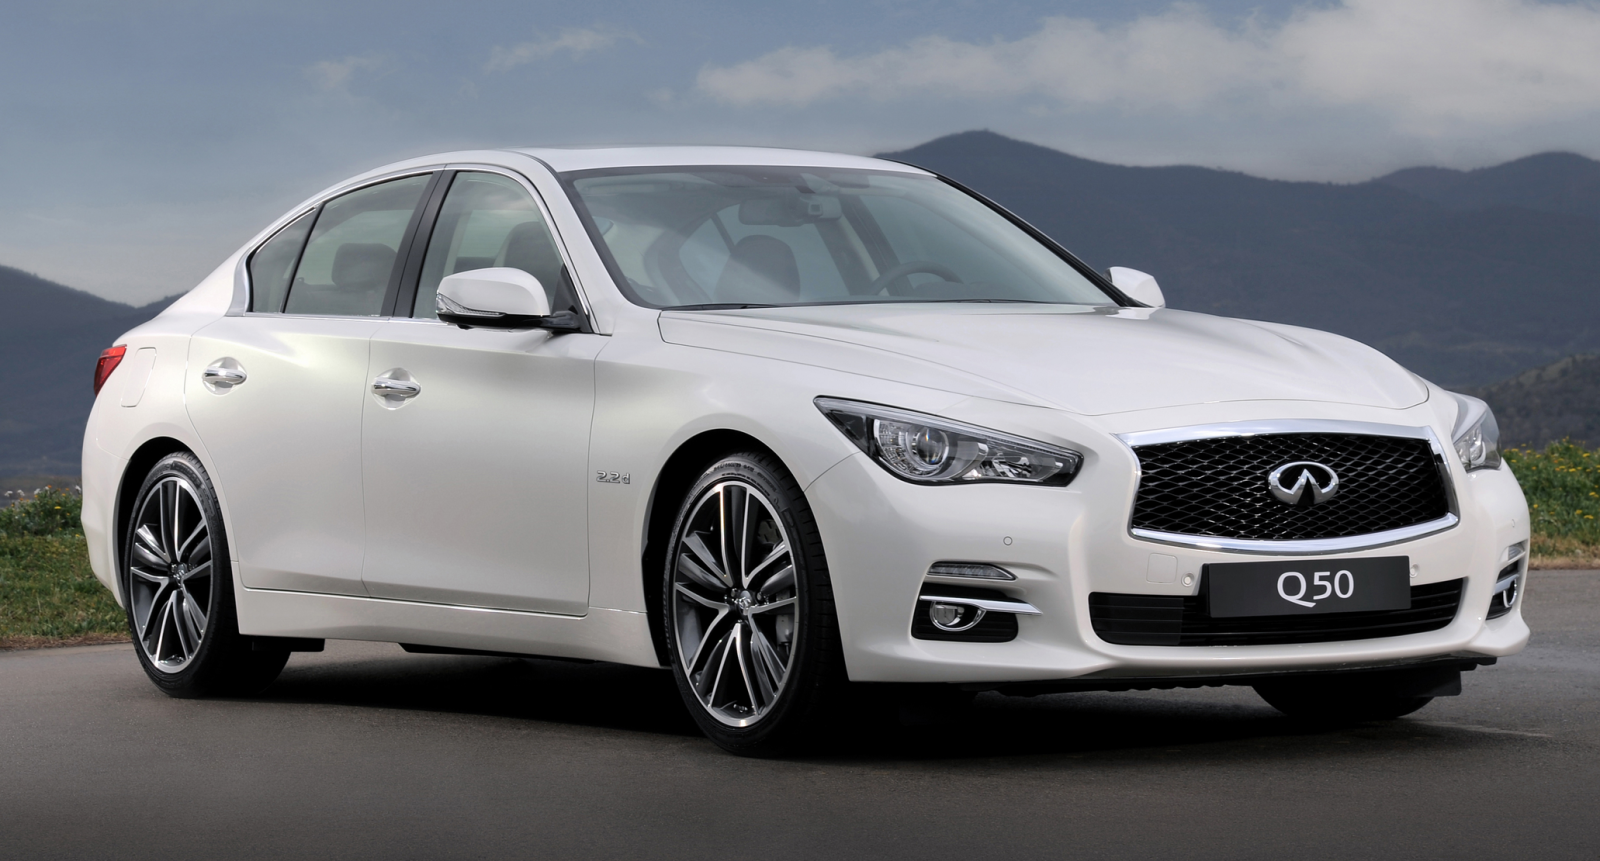 Infiniti Q50 Most Hackable Car in the World